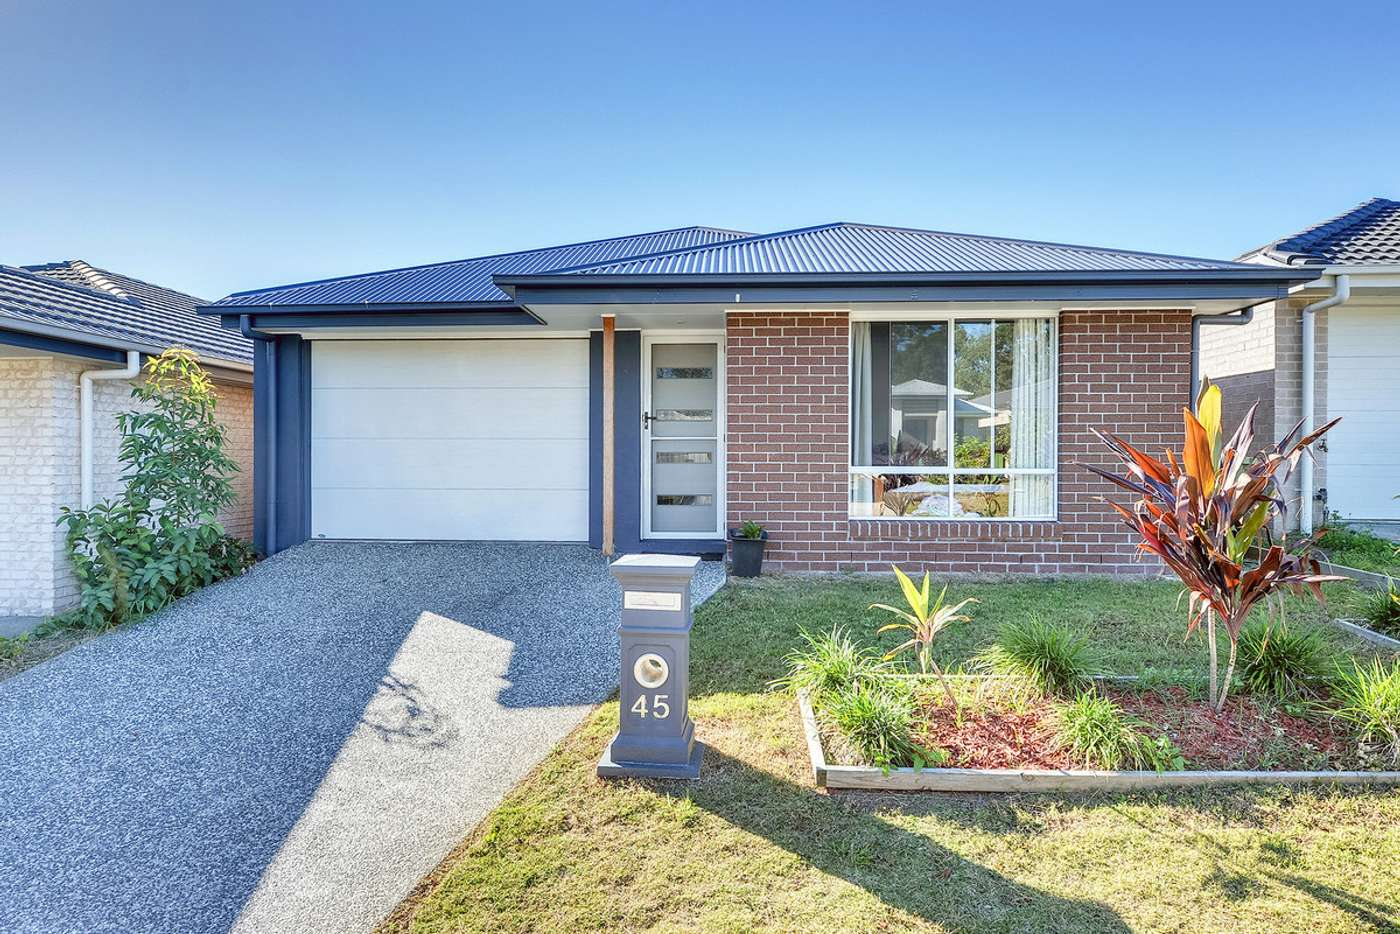 Main view of Homely house listing, 45 Orb Street, Yarrabilba QLD 4207